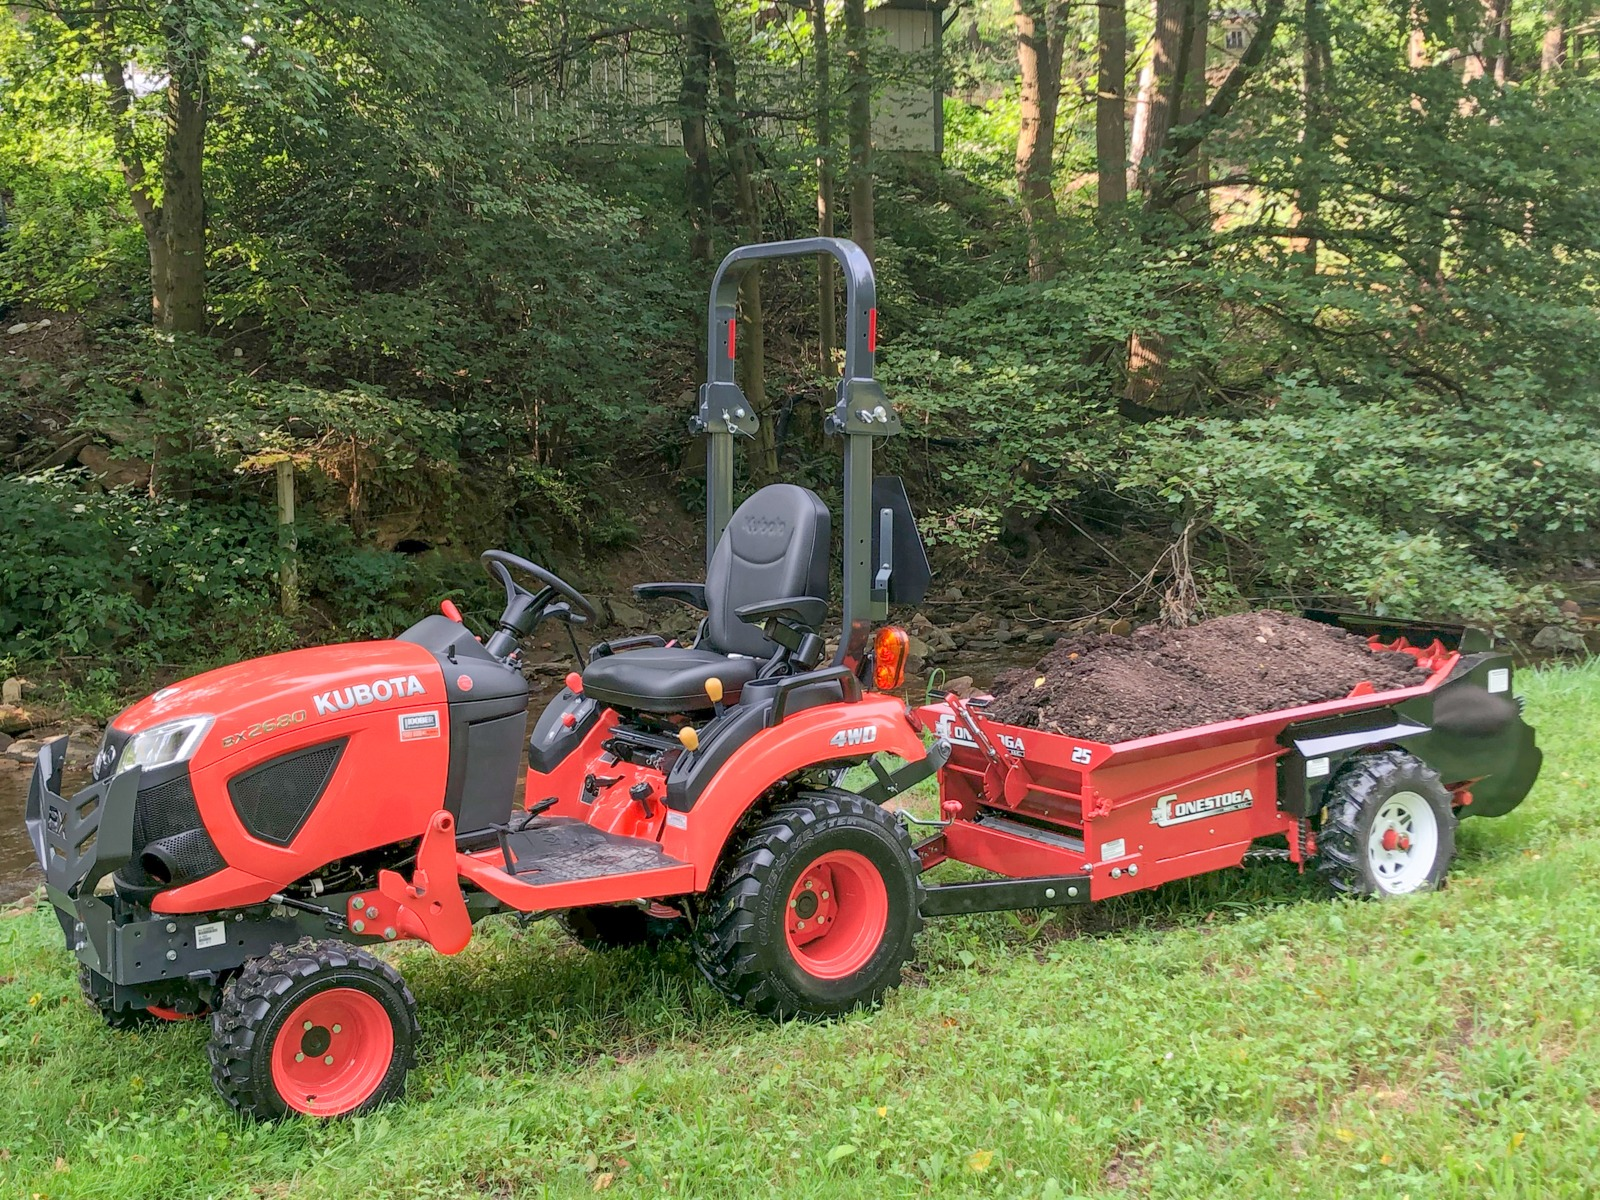 ground driven manure spreader pulled by kubota compact tractor